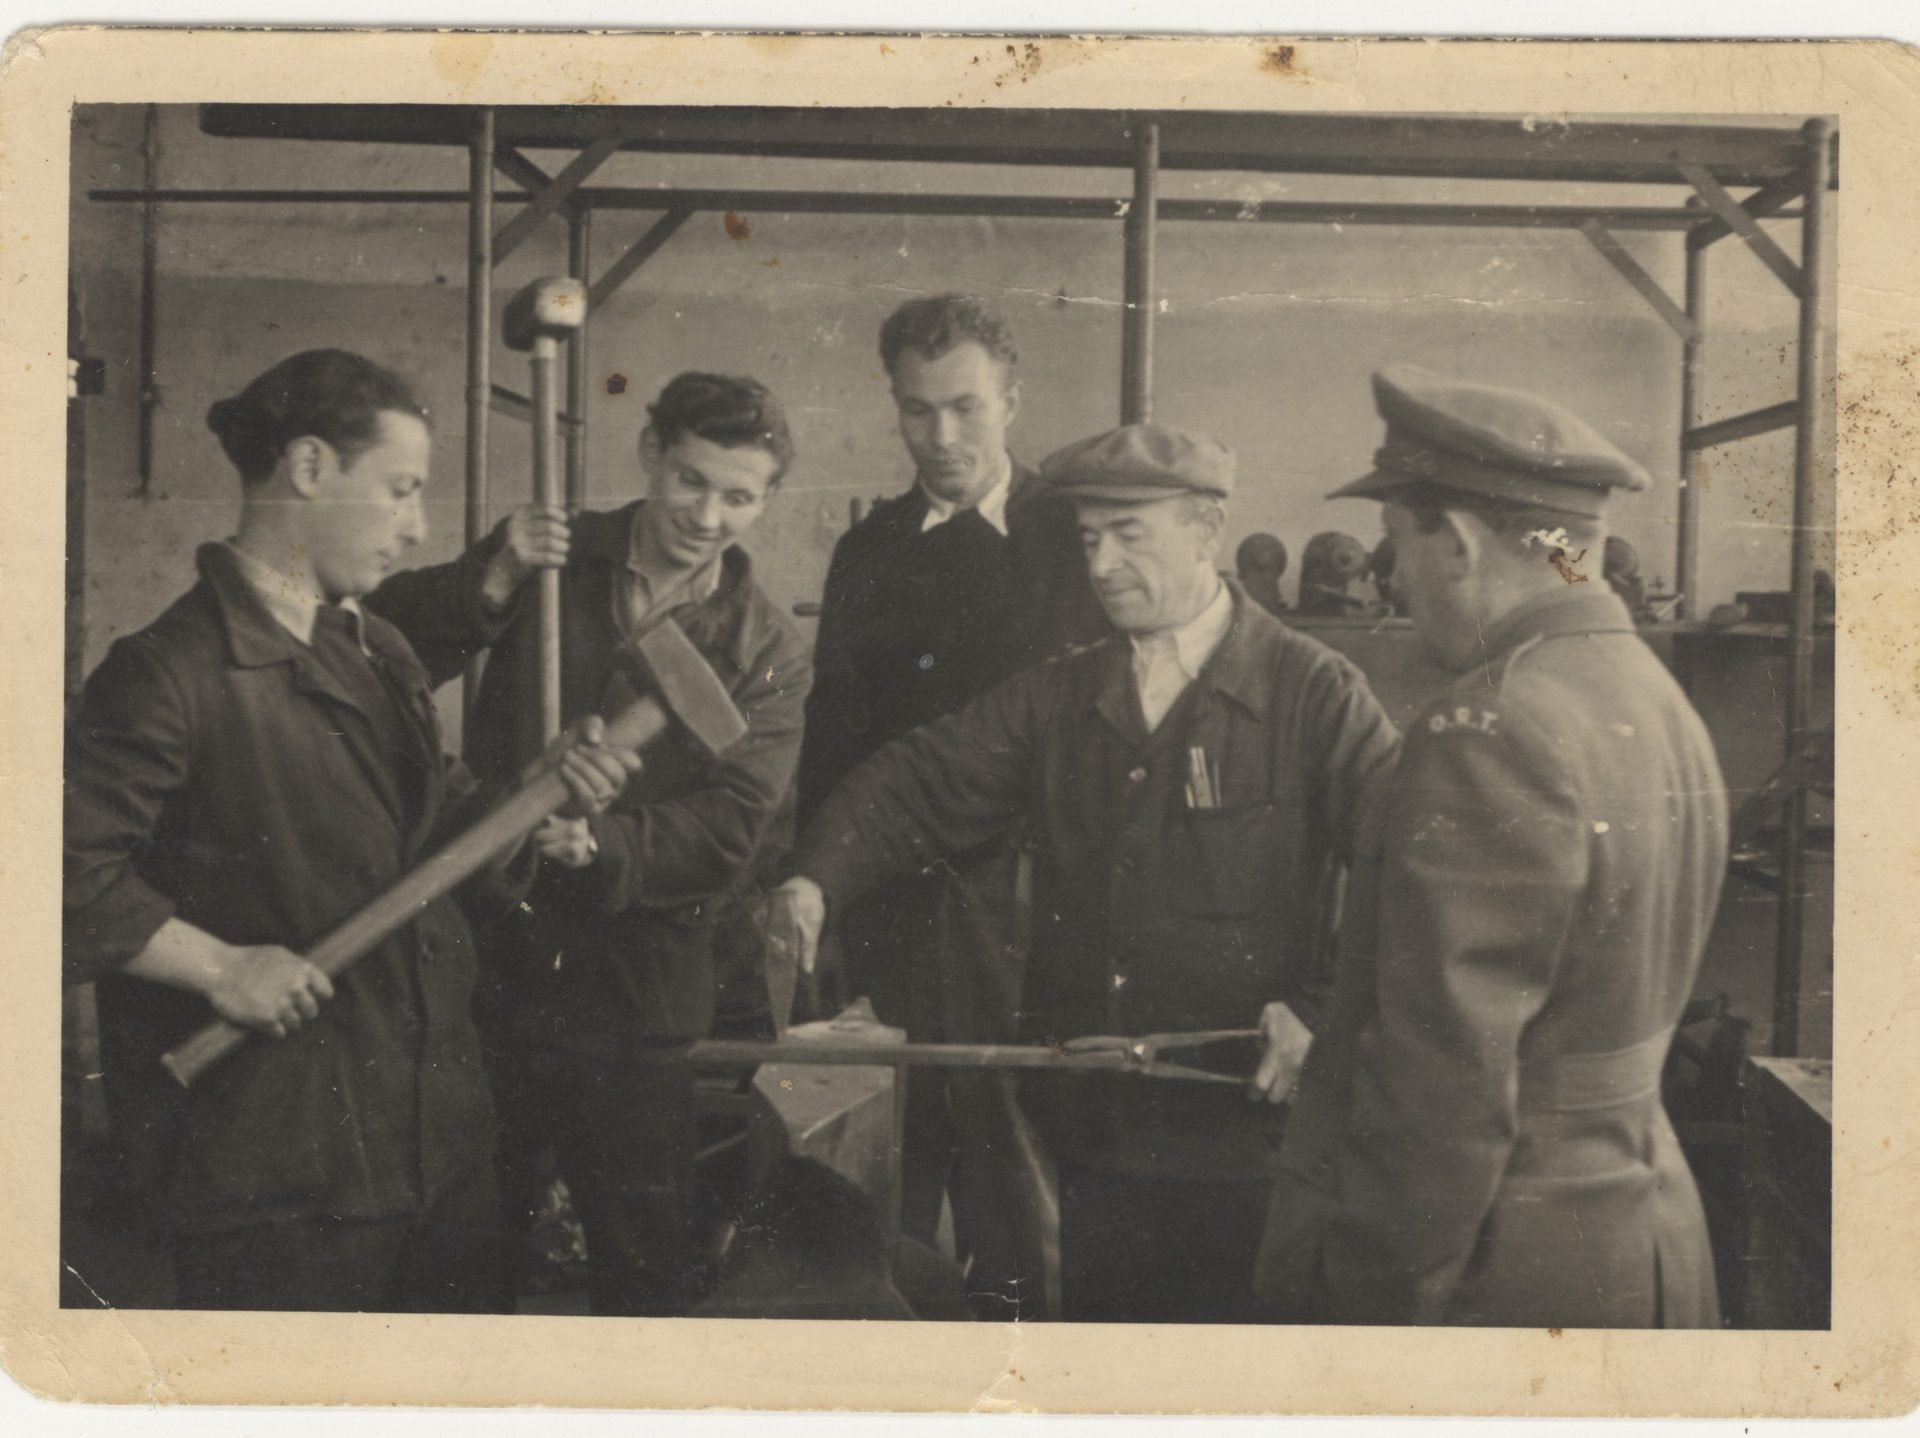 Photograph of men attending a mechanical engineering class at the Bergen-Belsen displaced persons camp in 1947.